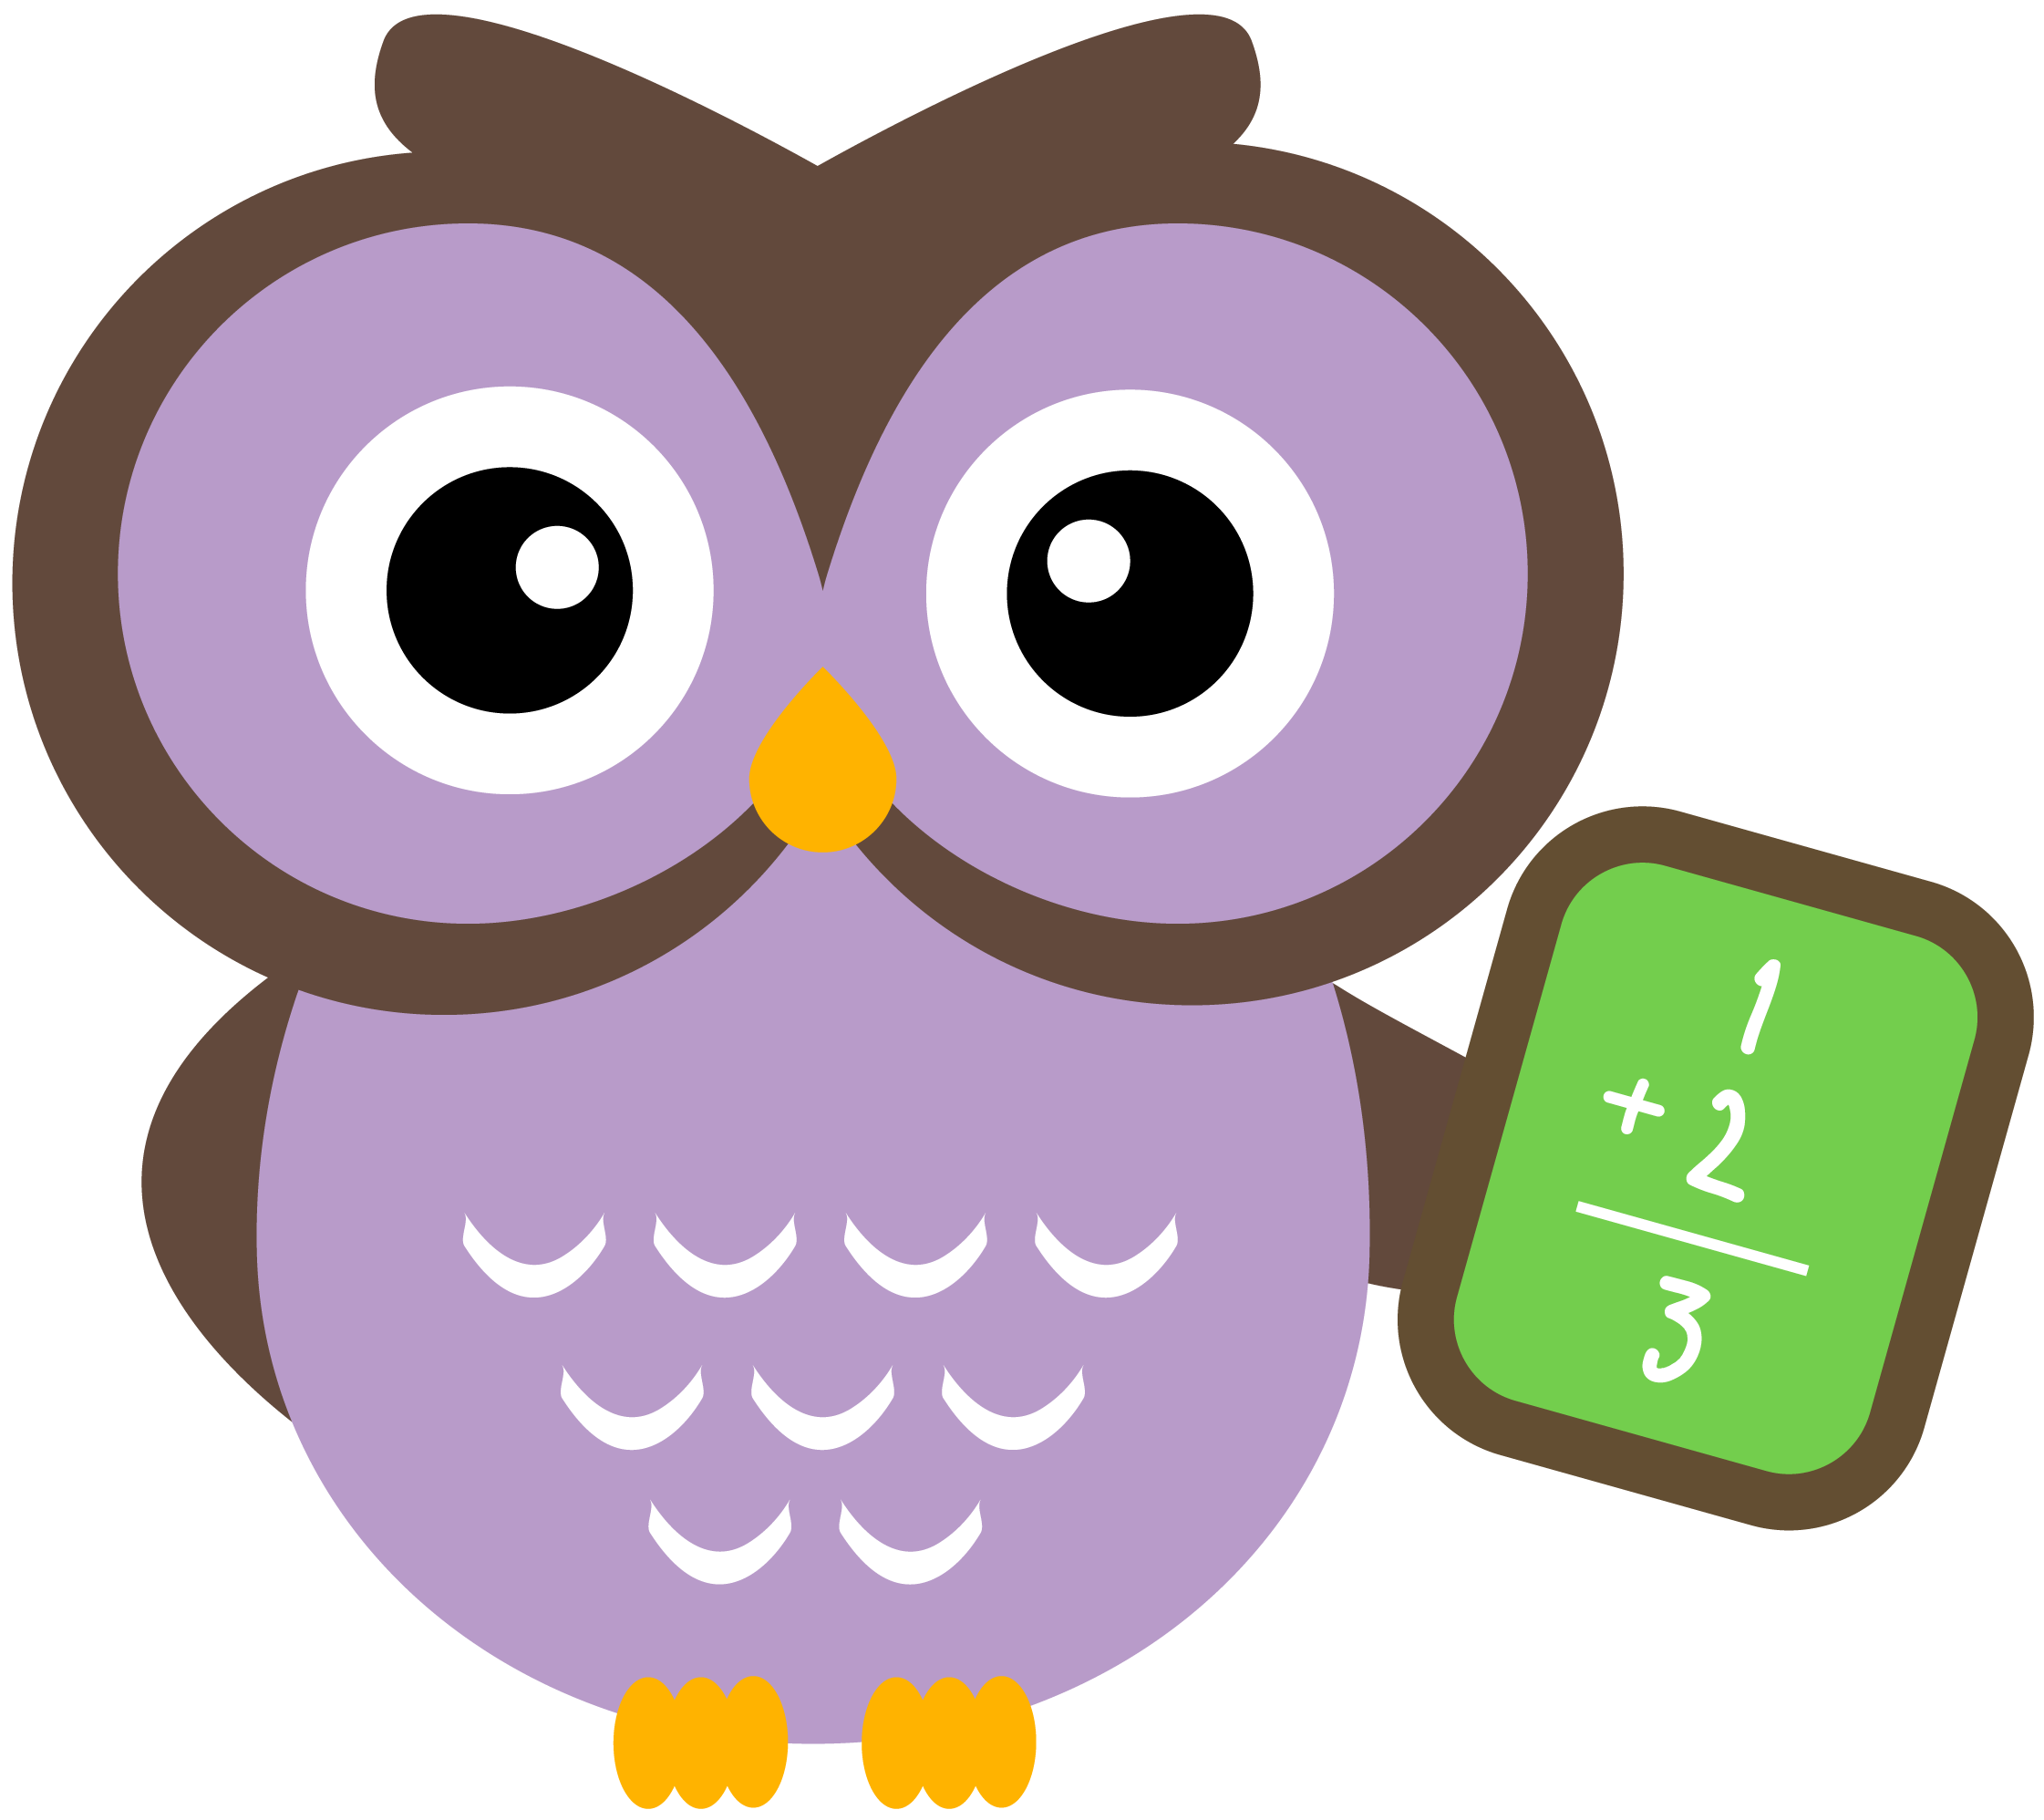 Owl reading book clipart clip art transparent stock I Love Math | Use these free images for your websites, art projects ... clip art transparent stock